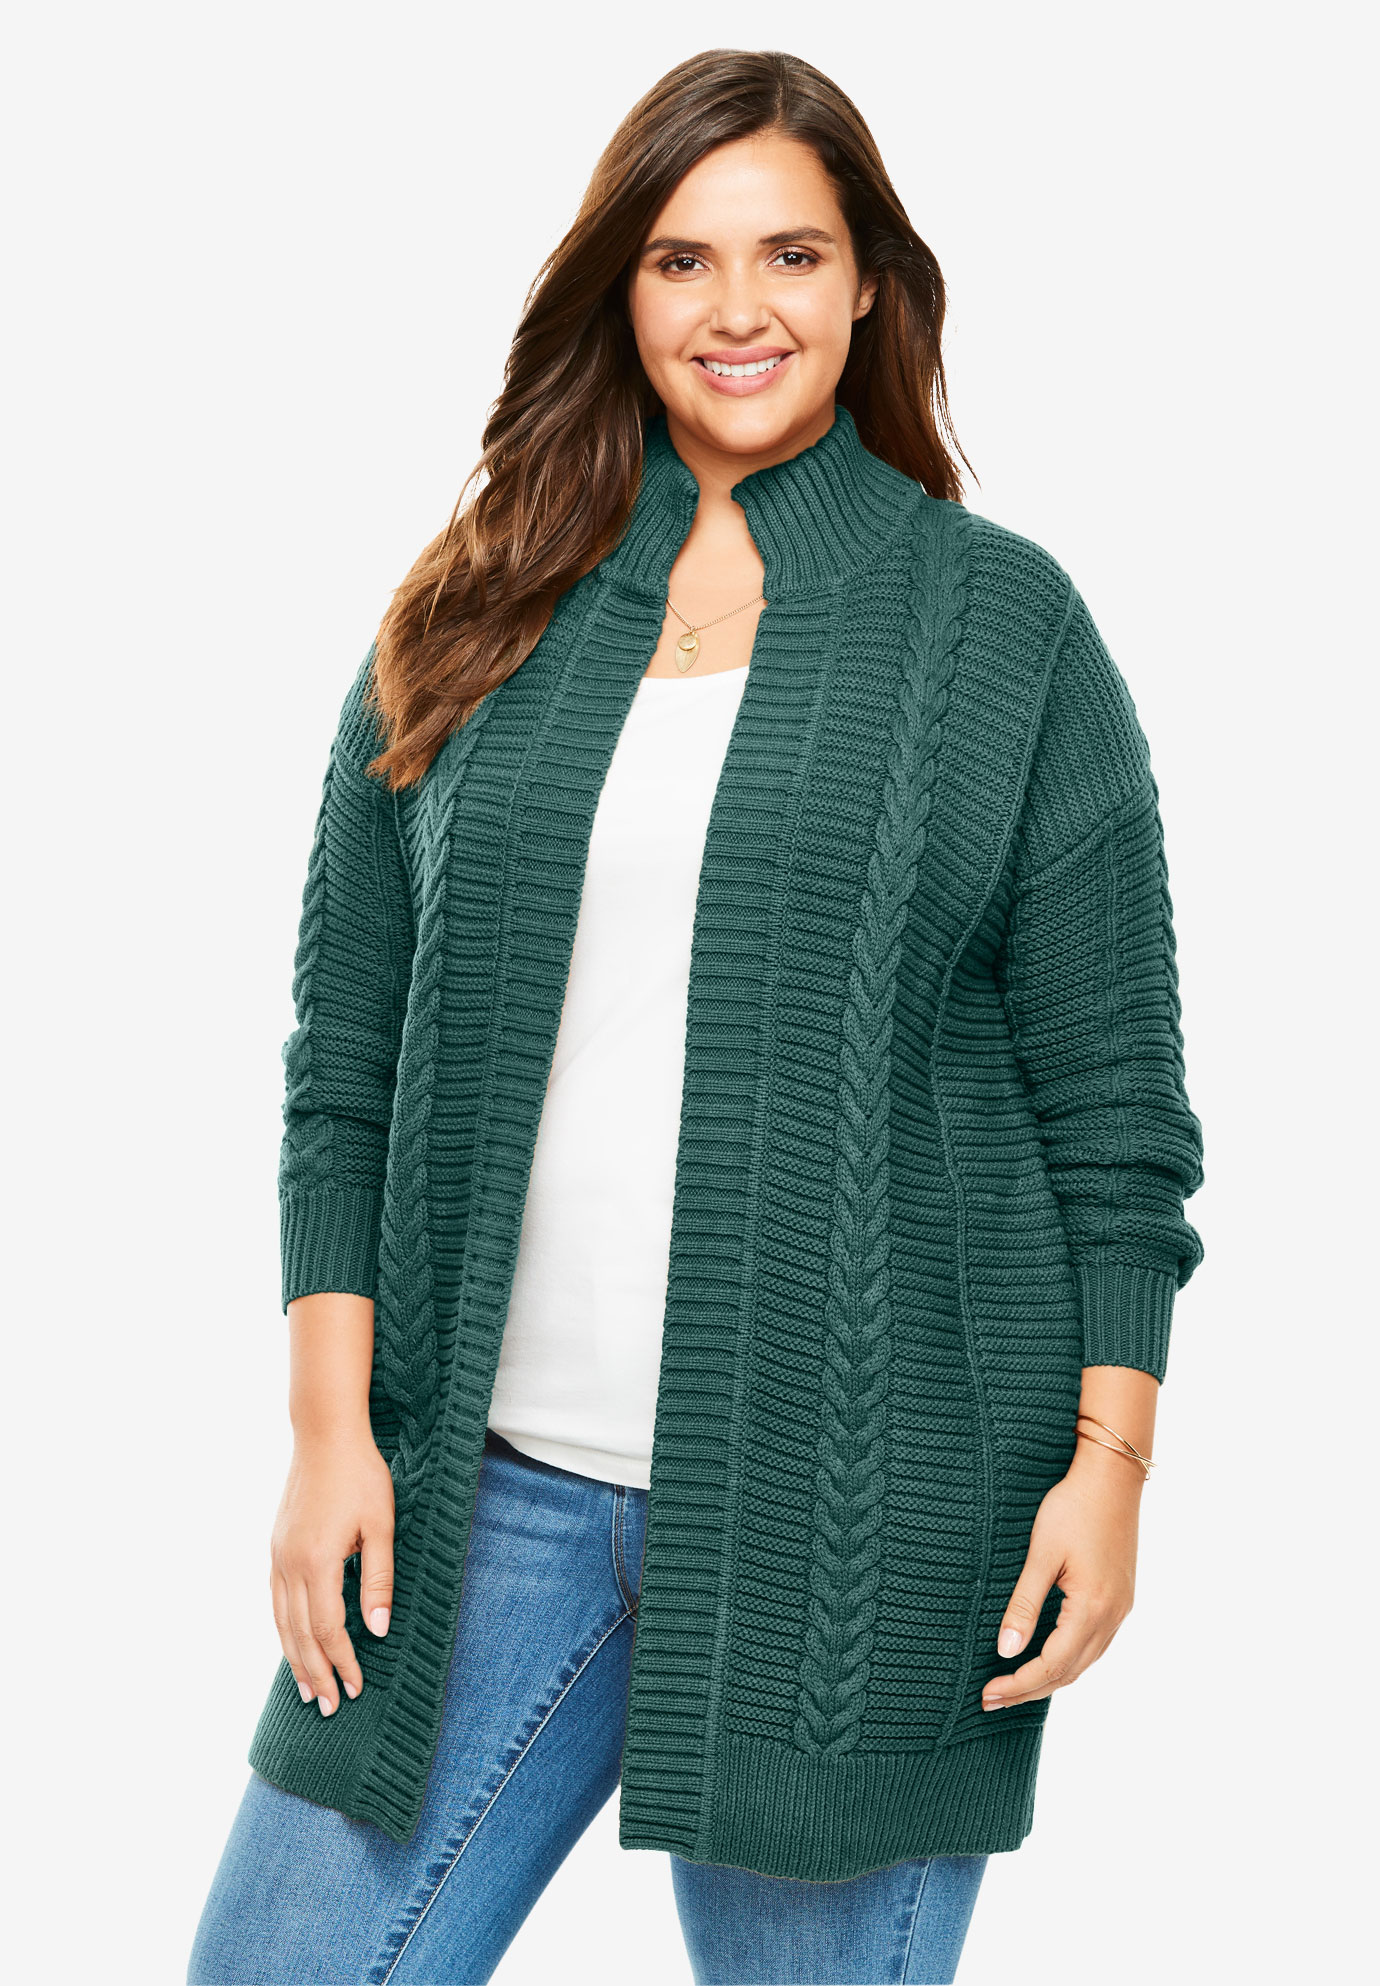 Chunky Knit Cardigan Plus Size Sweaters Cardigans Full Beauty